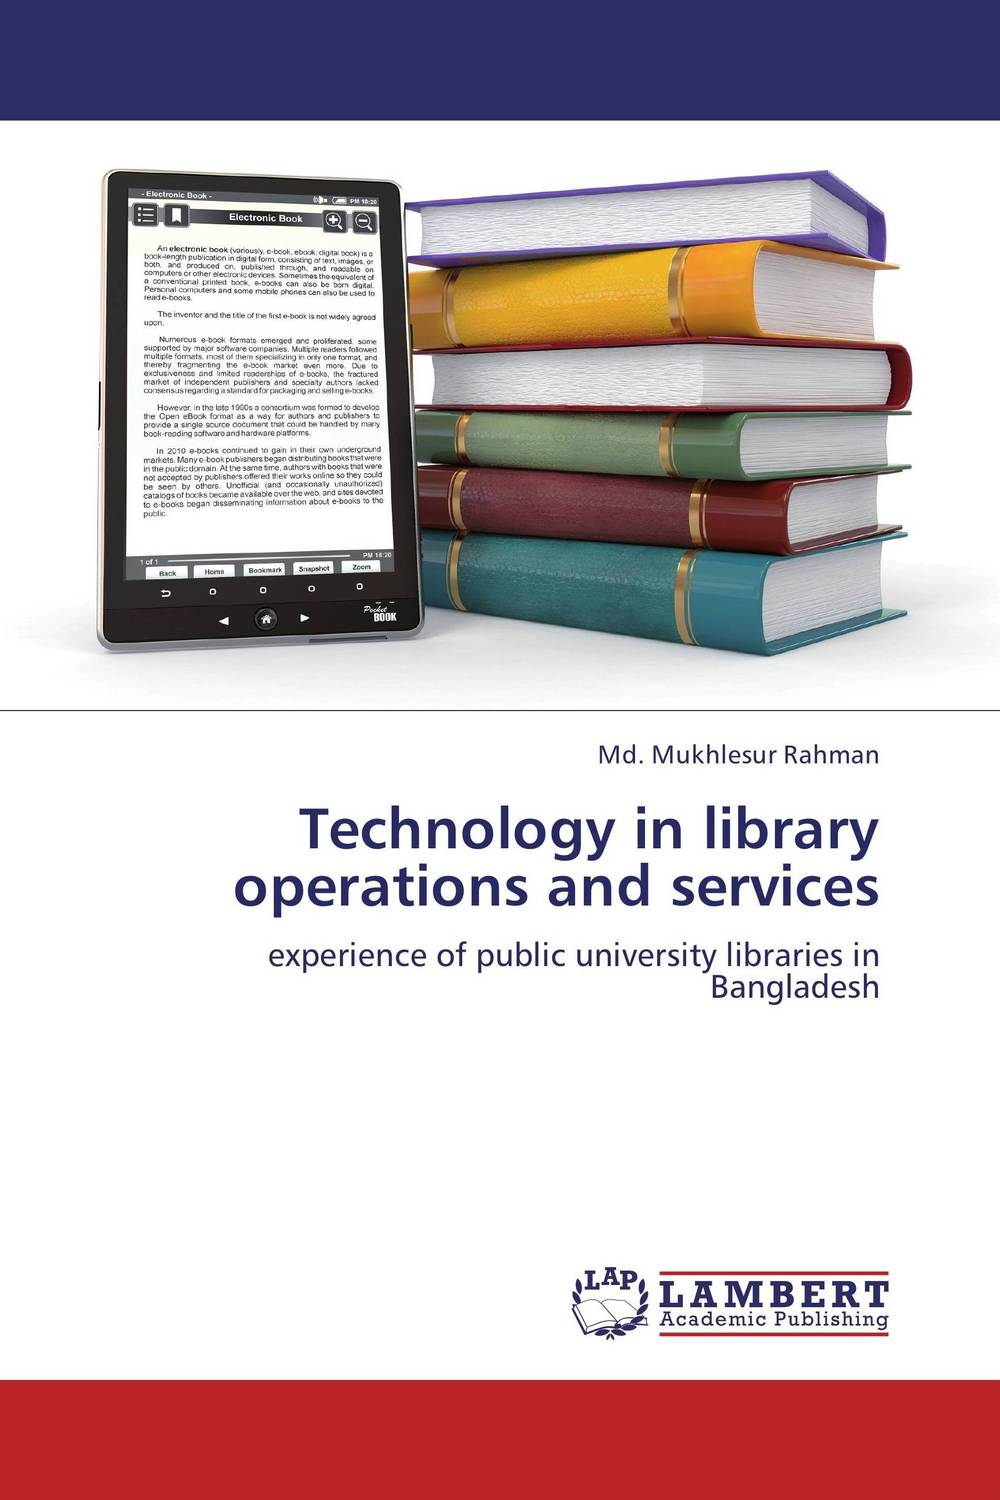 купить Technology in library operations and services недорого